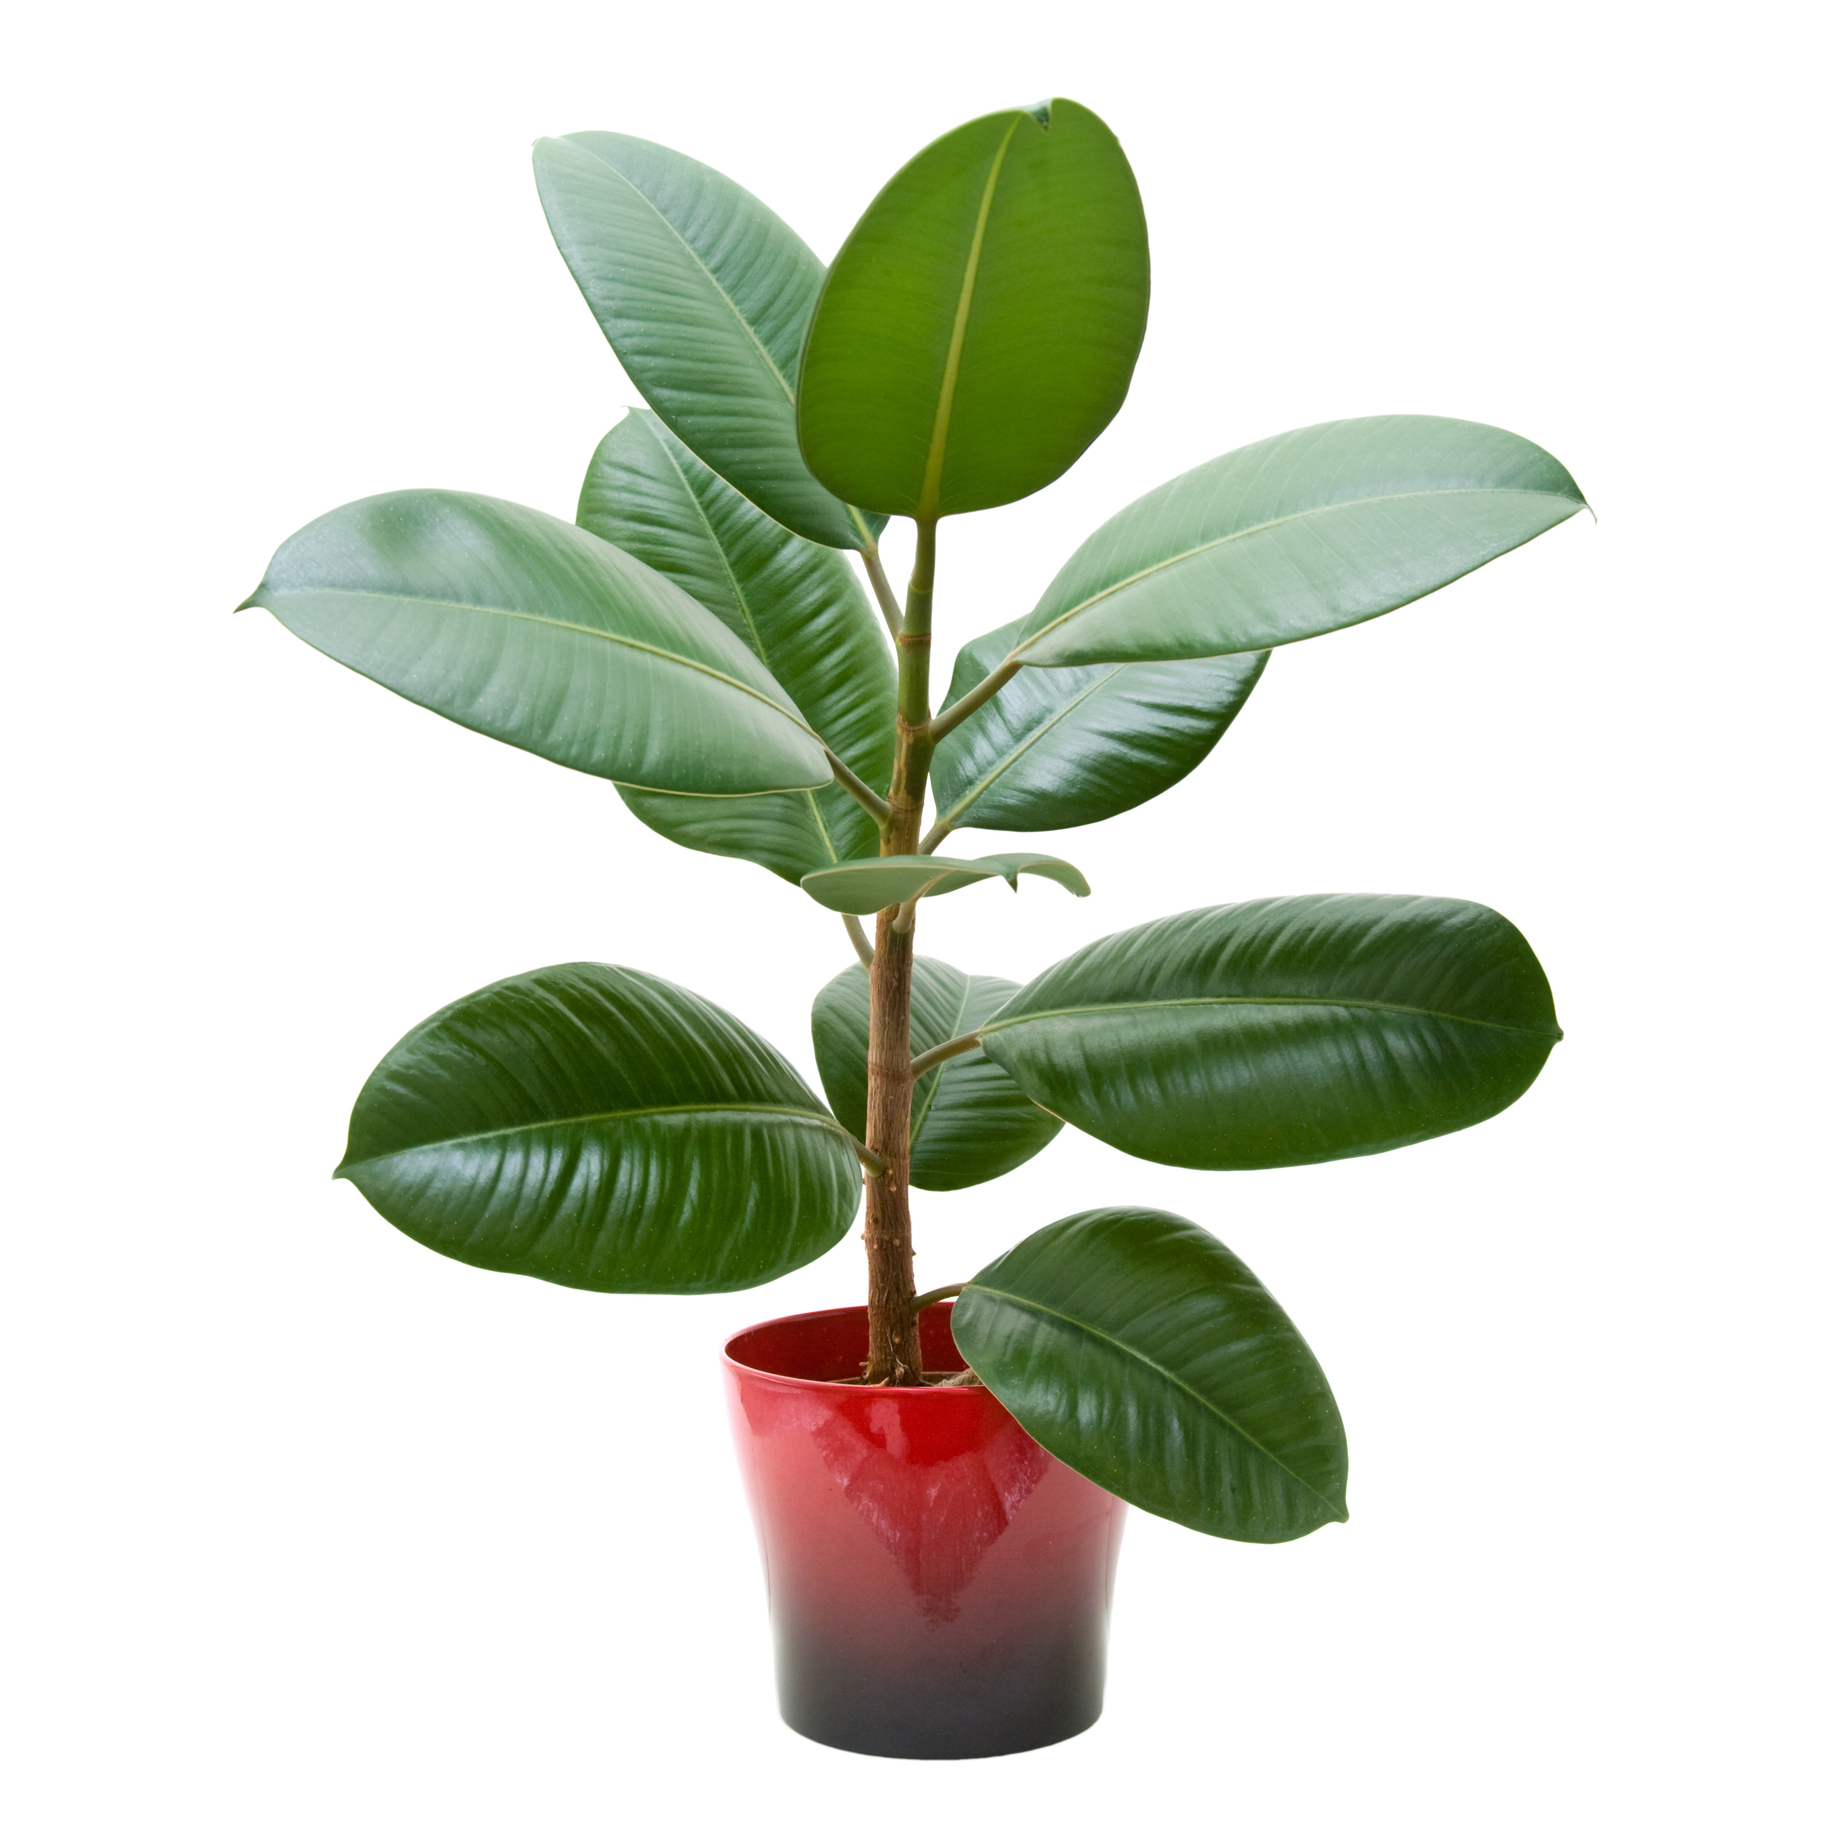 Rubber plant on white background